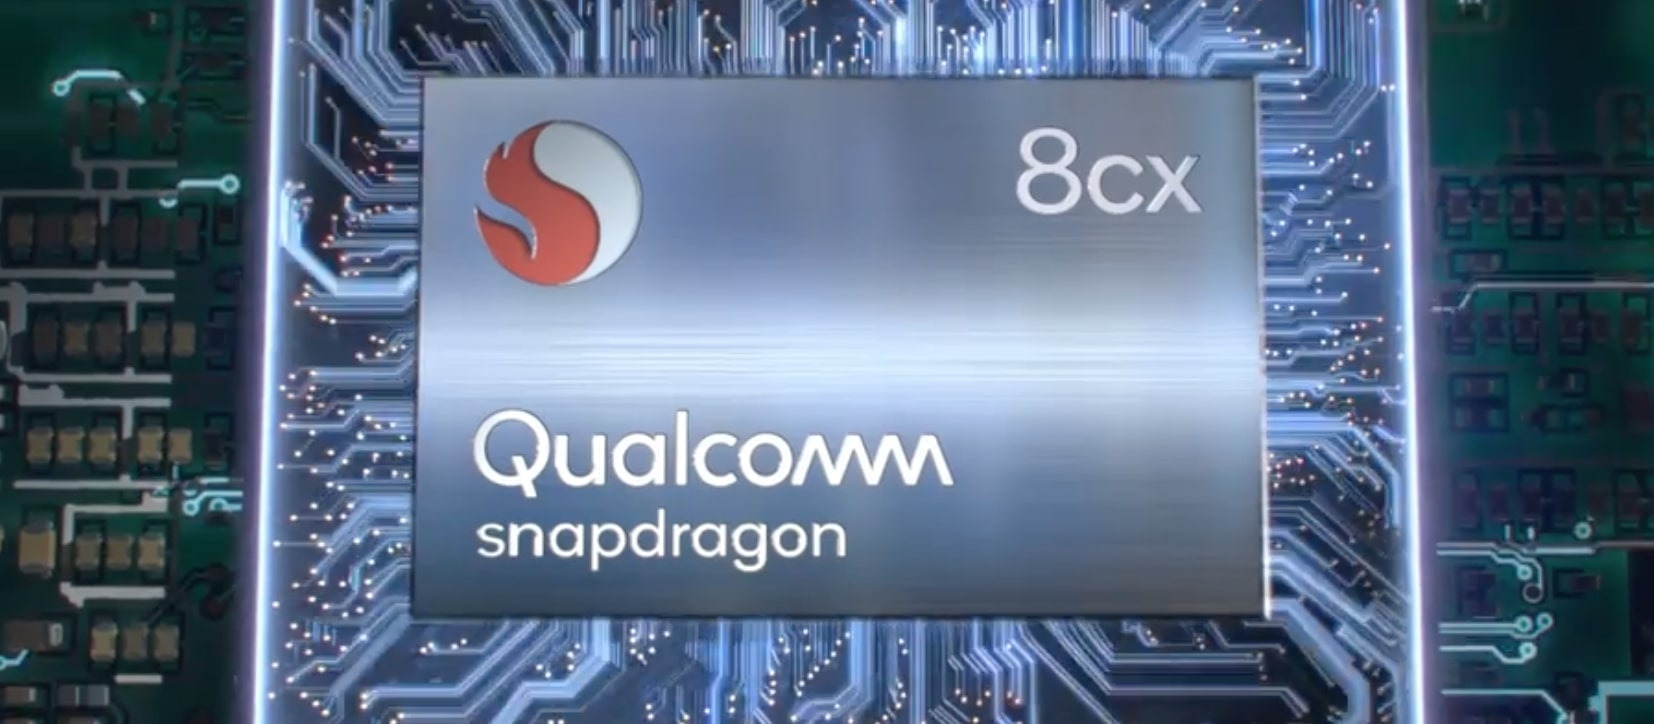 Analyst Angle: With Snapdragon 8cx, ARM processors graduate to